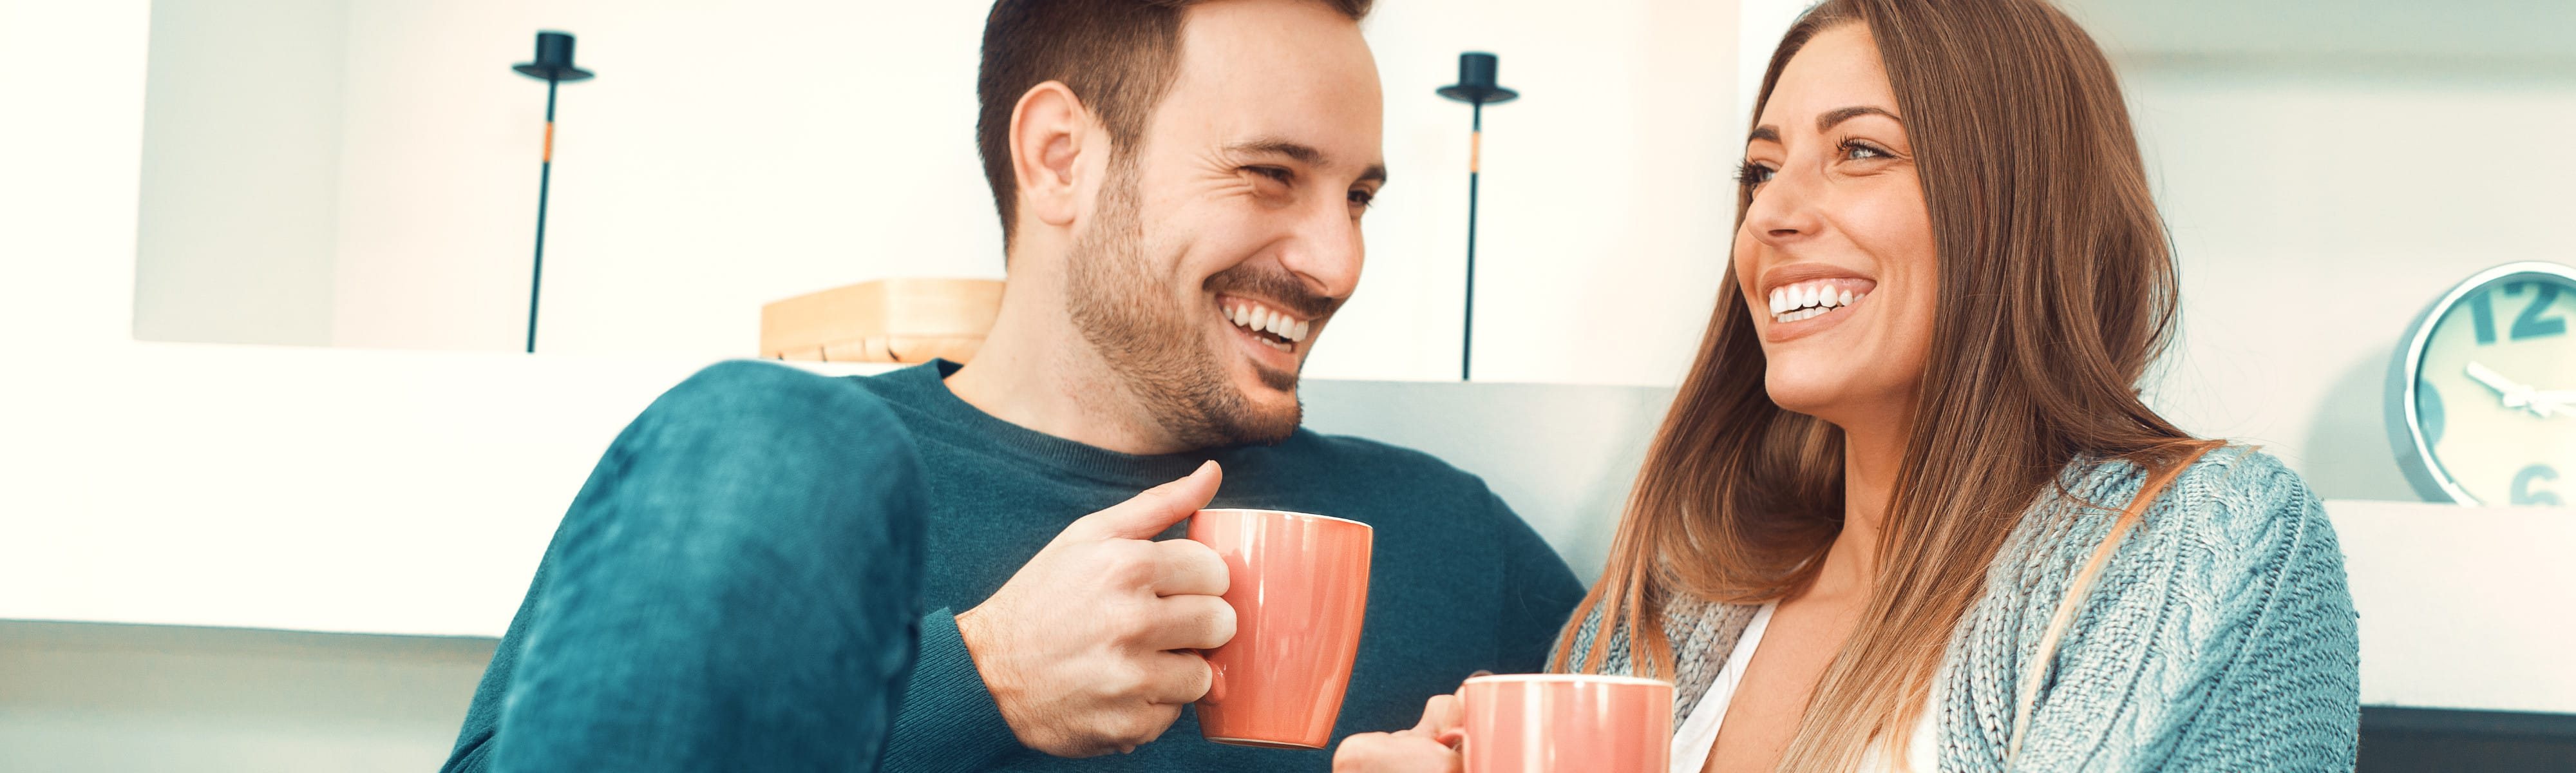 A man and woman drinking coffee on the couch.